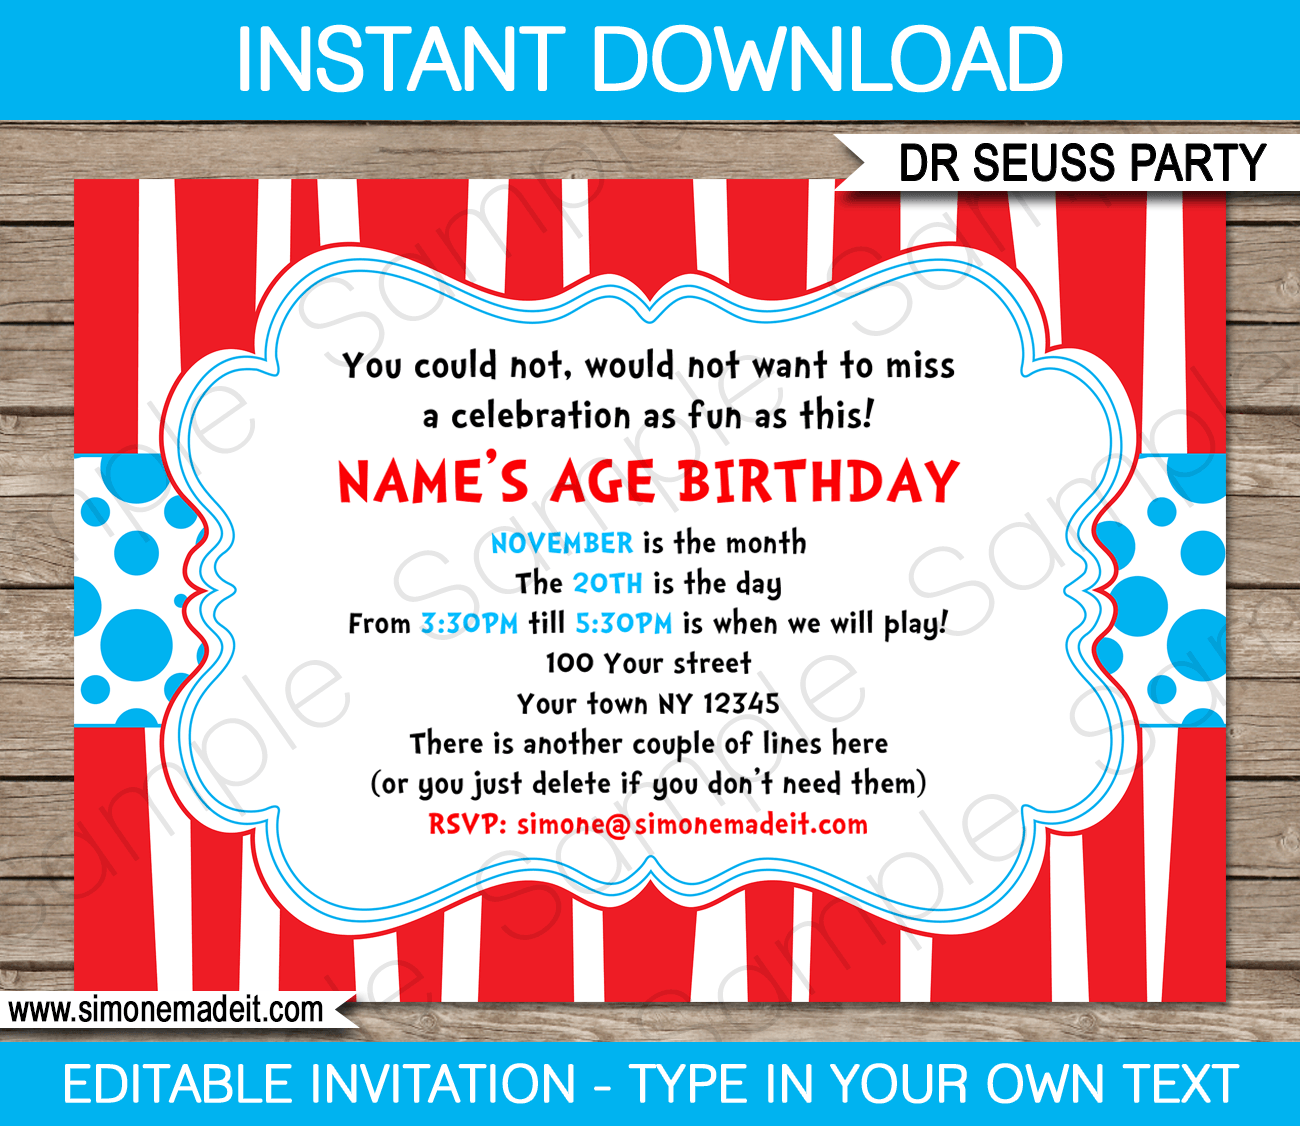 dr seuss party invitations | birthday party | template, Party invitations